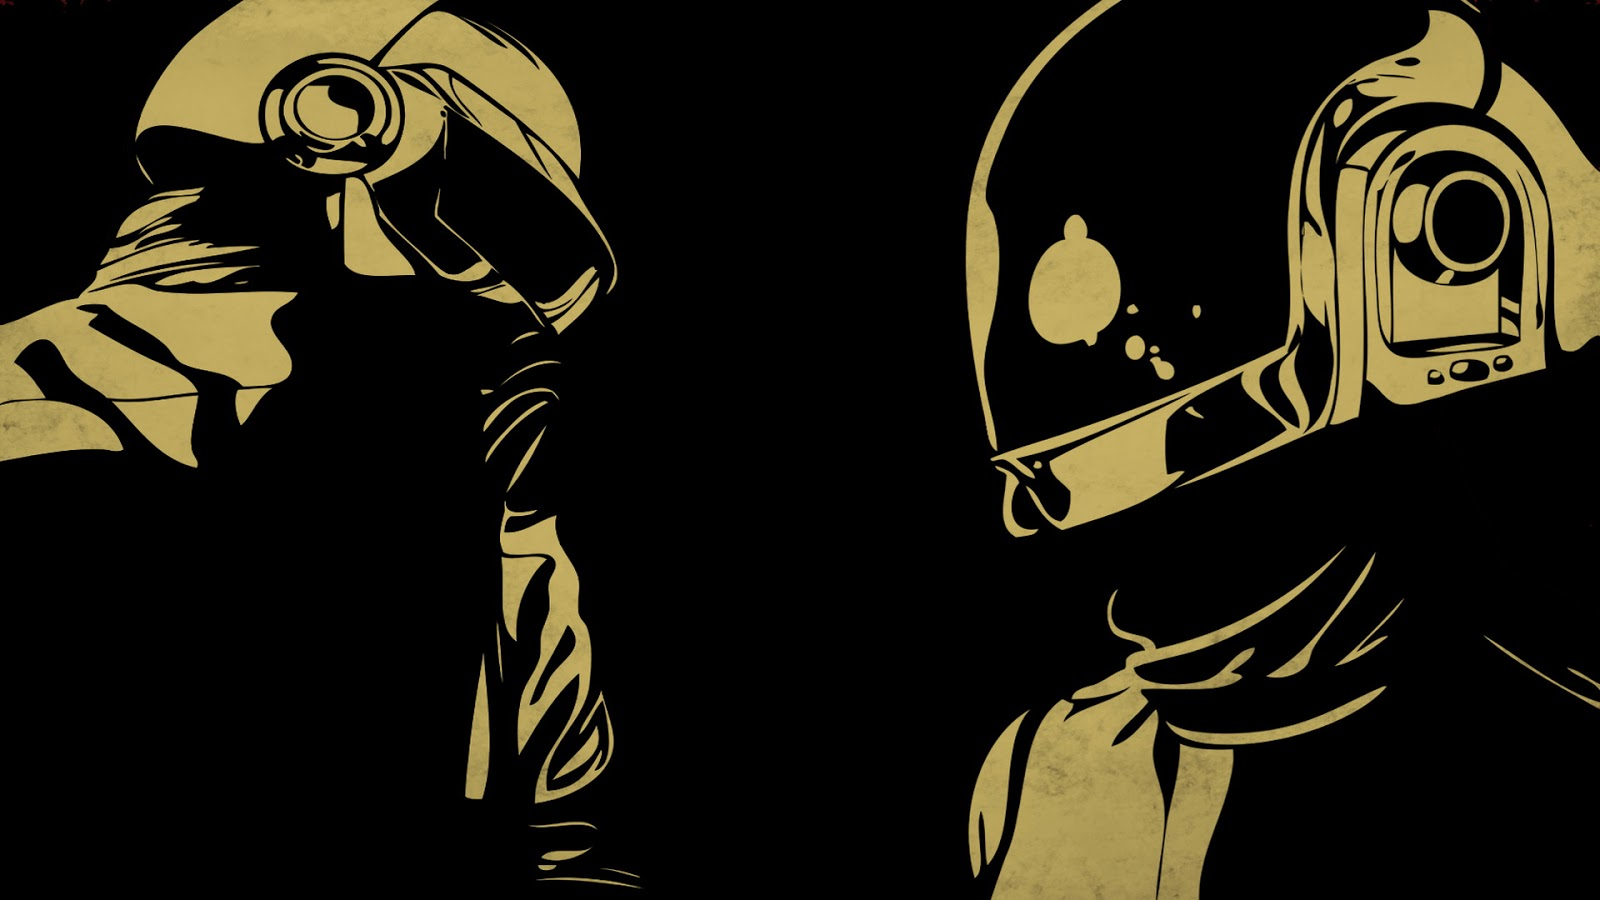 french musicians daft punk wallpapers - Free Wallpapers French Musicians Daft Punk